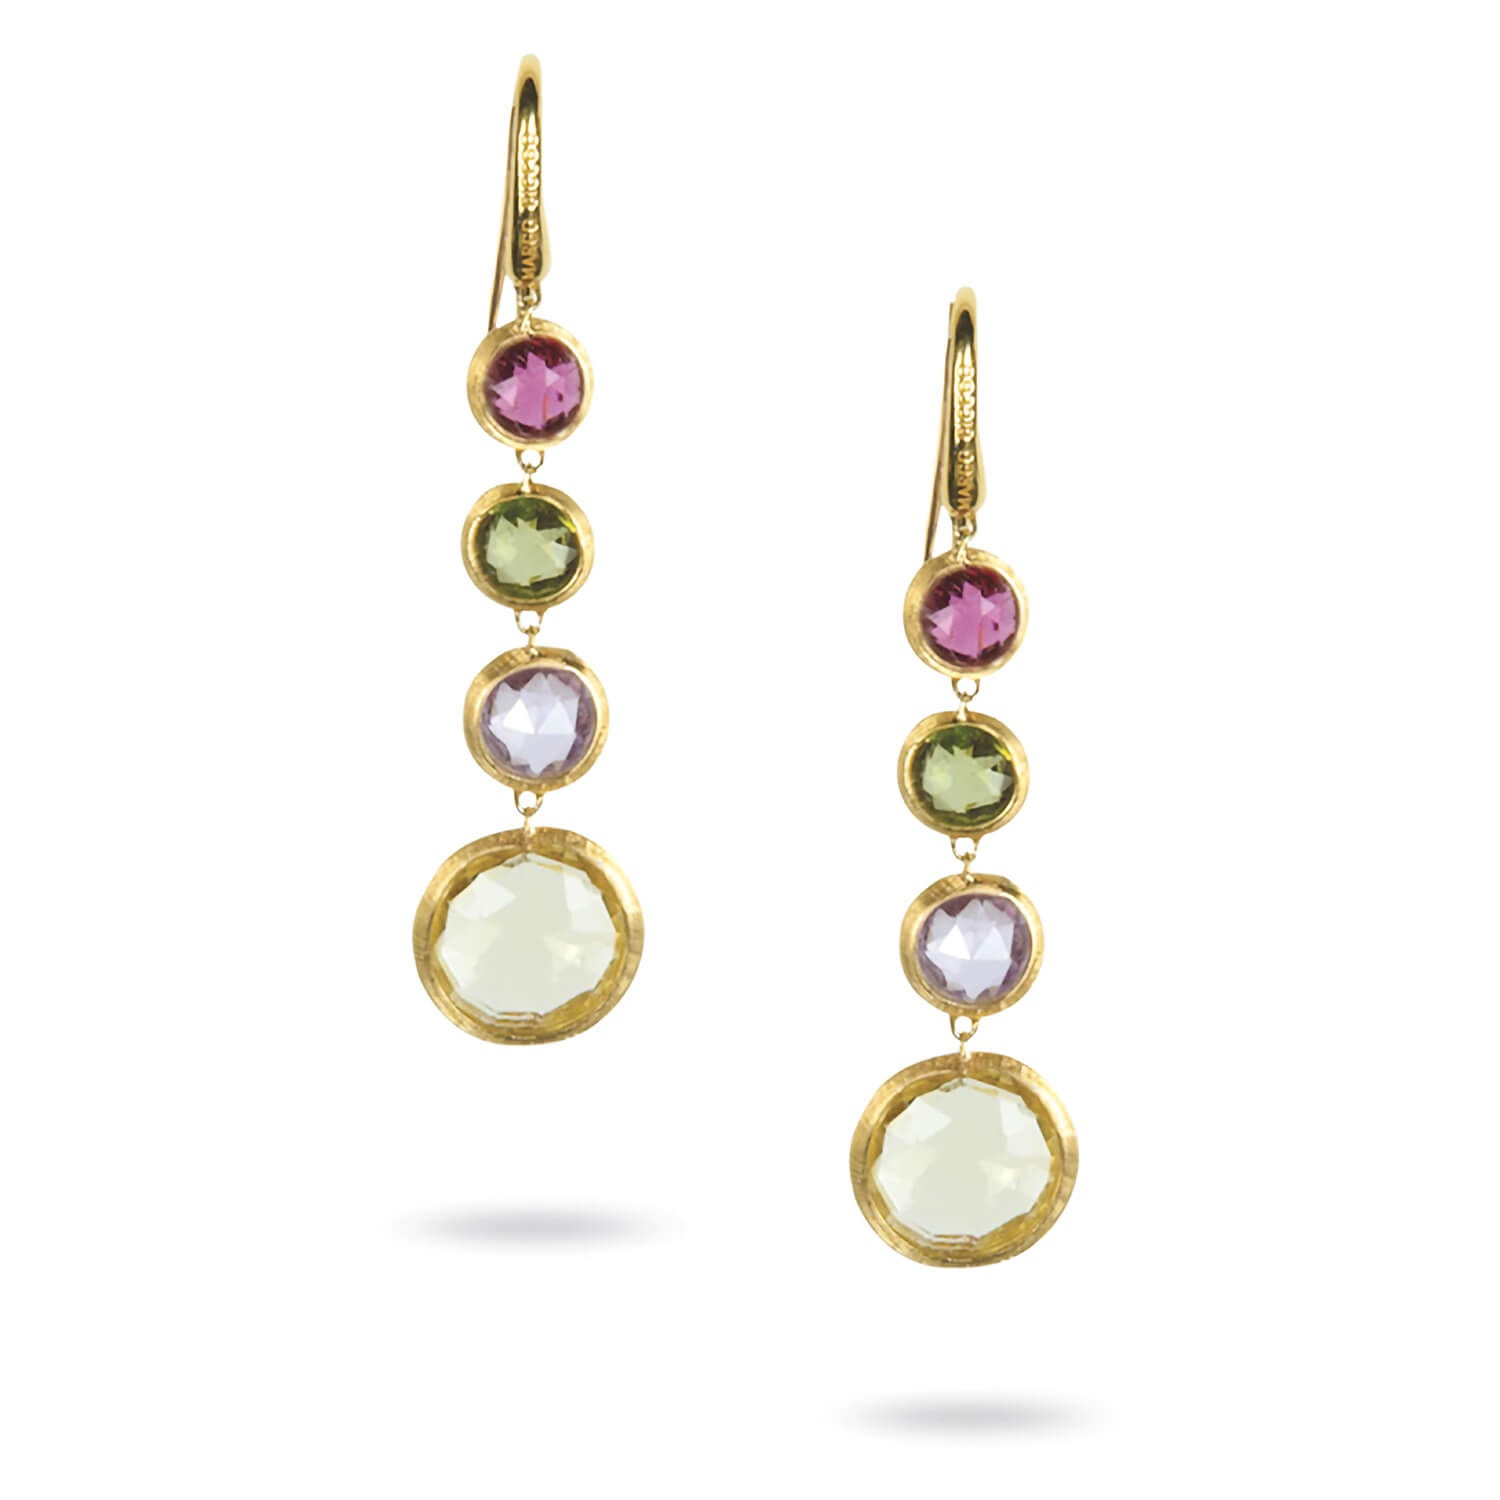 Marco Bicego Jaipur 18ct gold mixed gem earrings